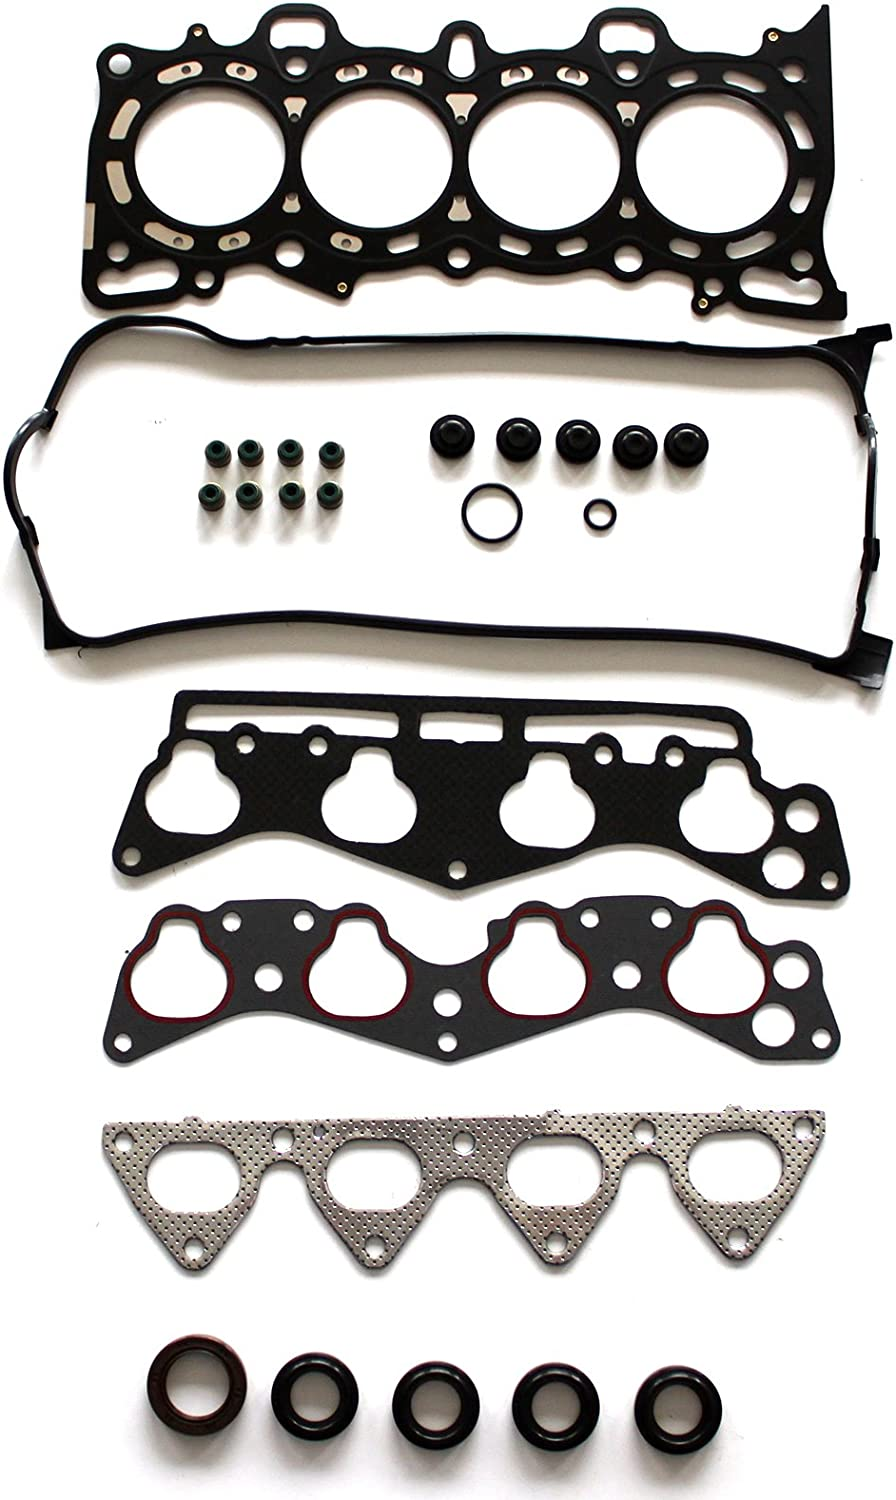 Omaha Mall ECCPP Engine Replacement Cylinder Head Elegant Gasket 1996-2000 for Set